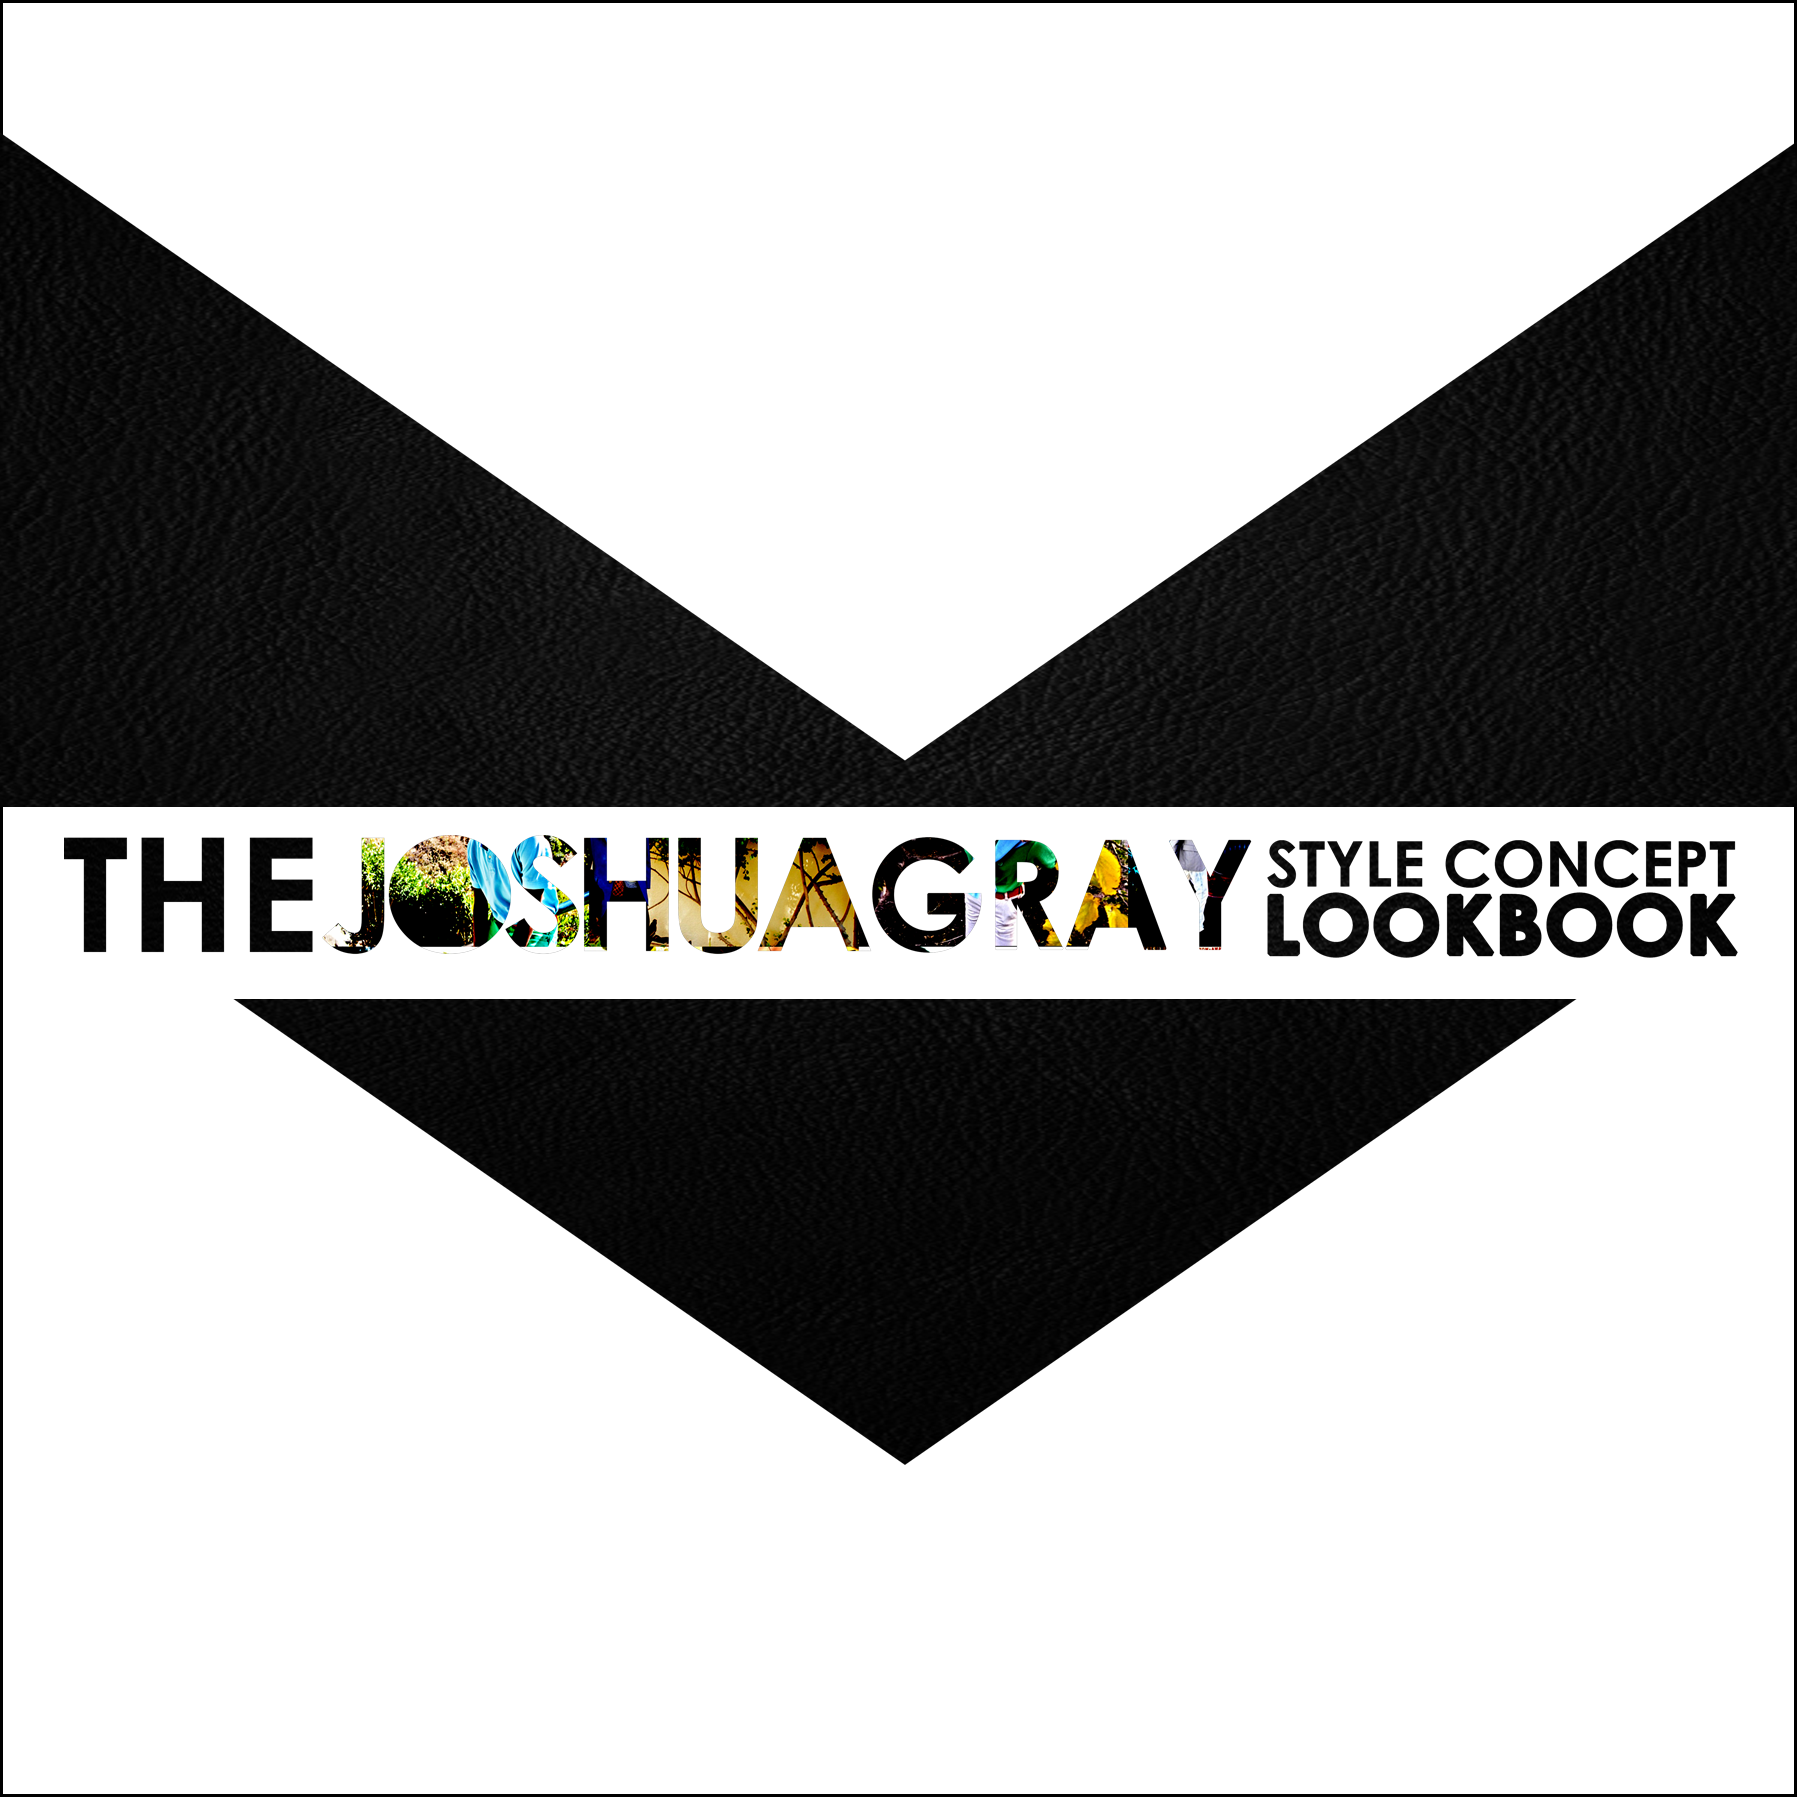 [VIEW]: The Joshua Gray STYLE CONCEPT LOOKBOOK | Season 1